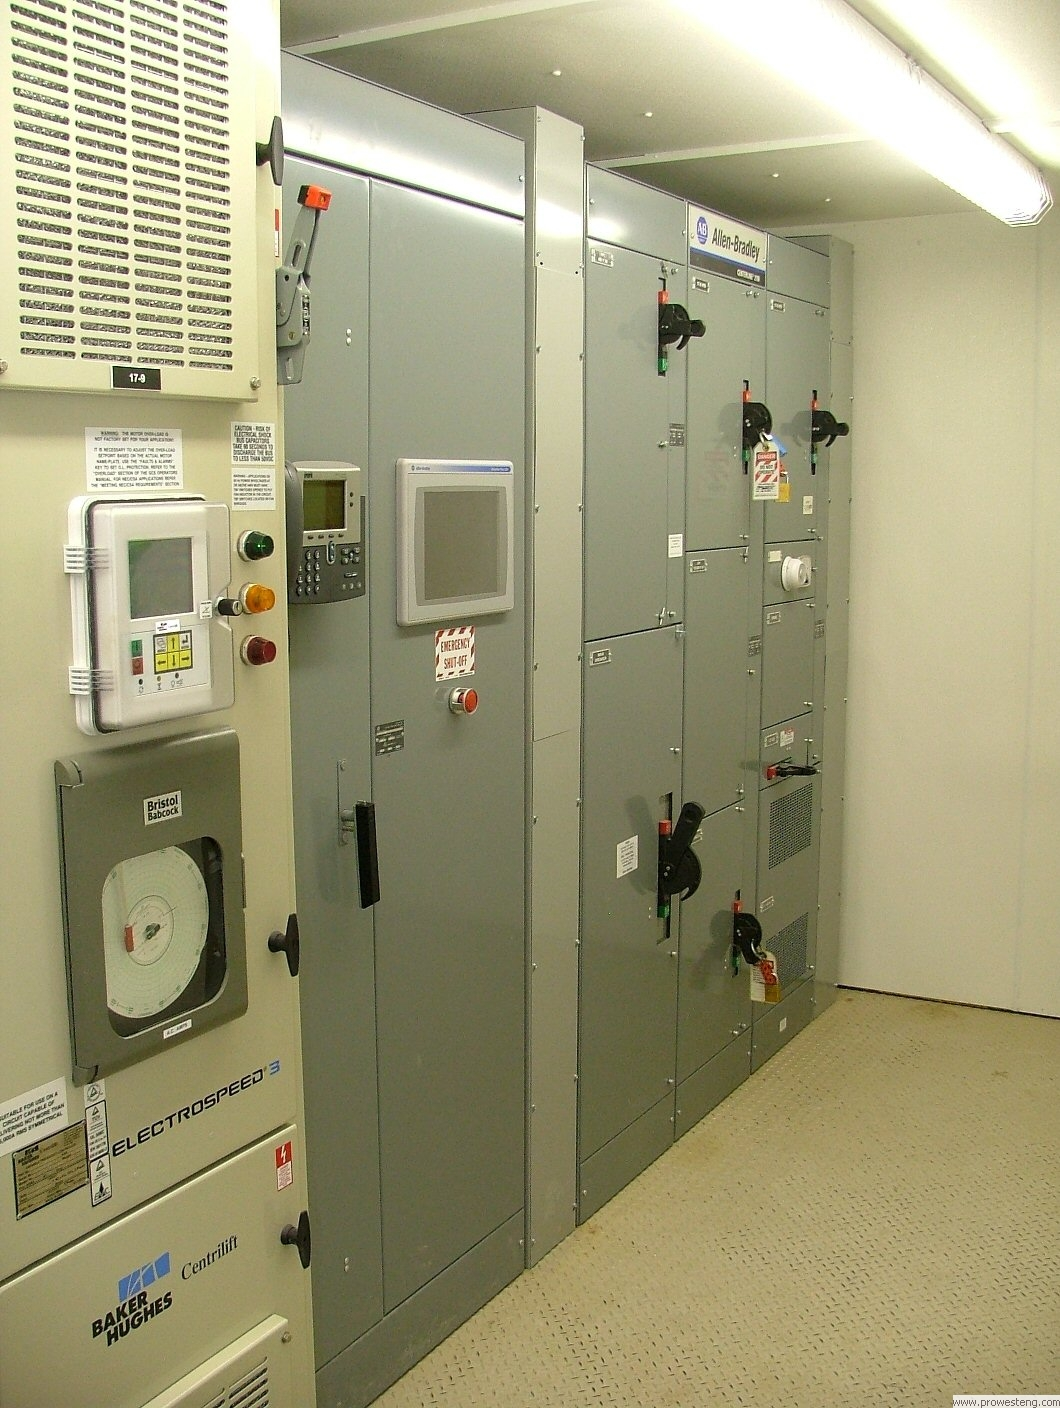 Allen Bradley Centerline Motor Control Center, along with adjacent control panel and VFD.